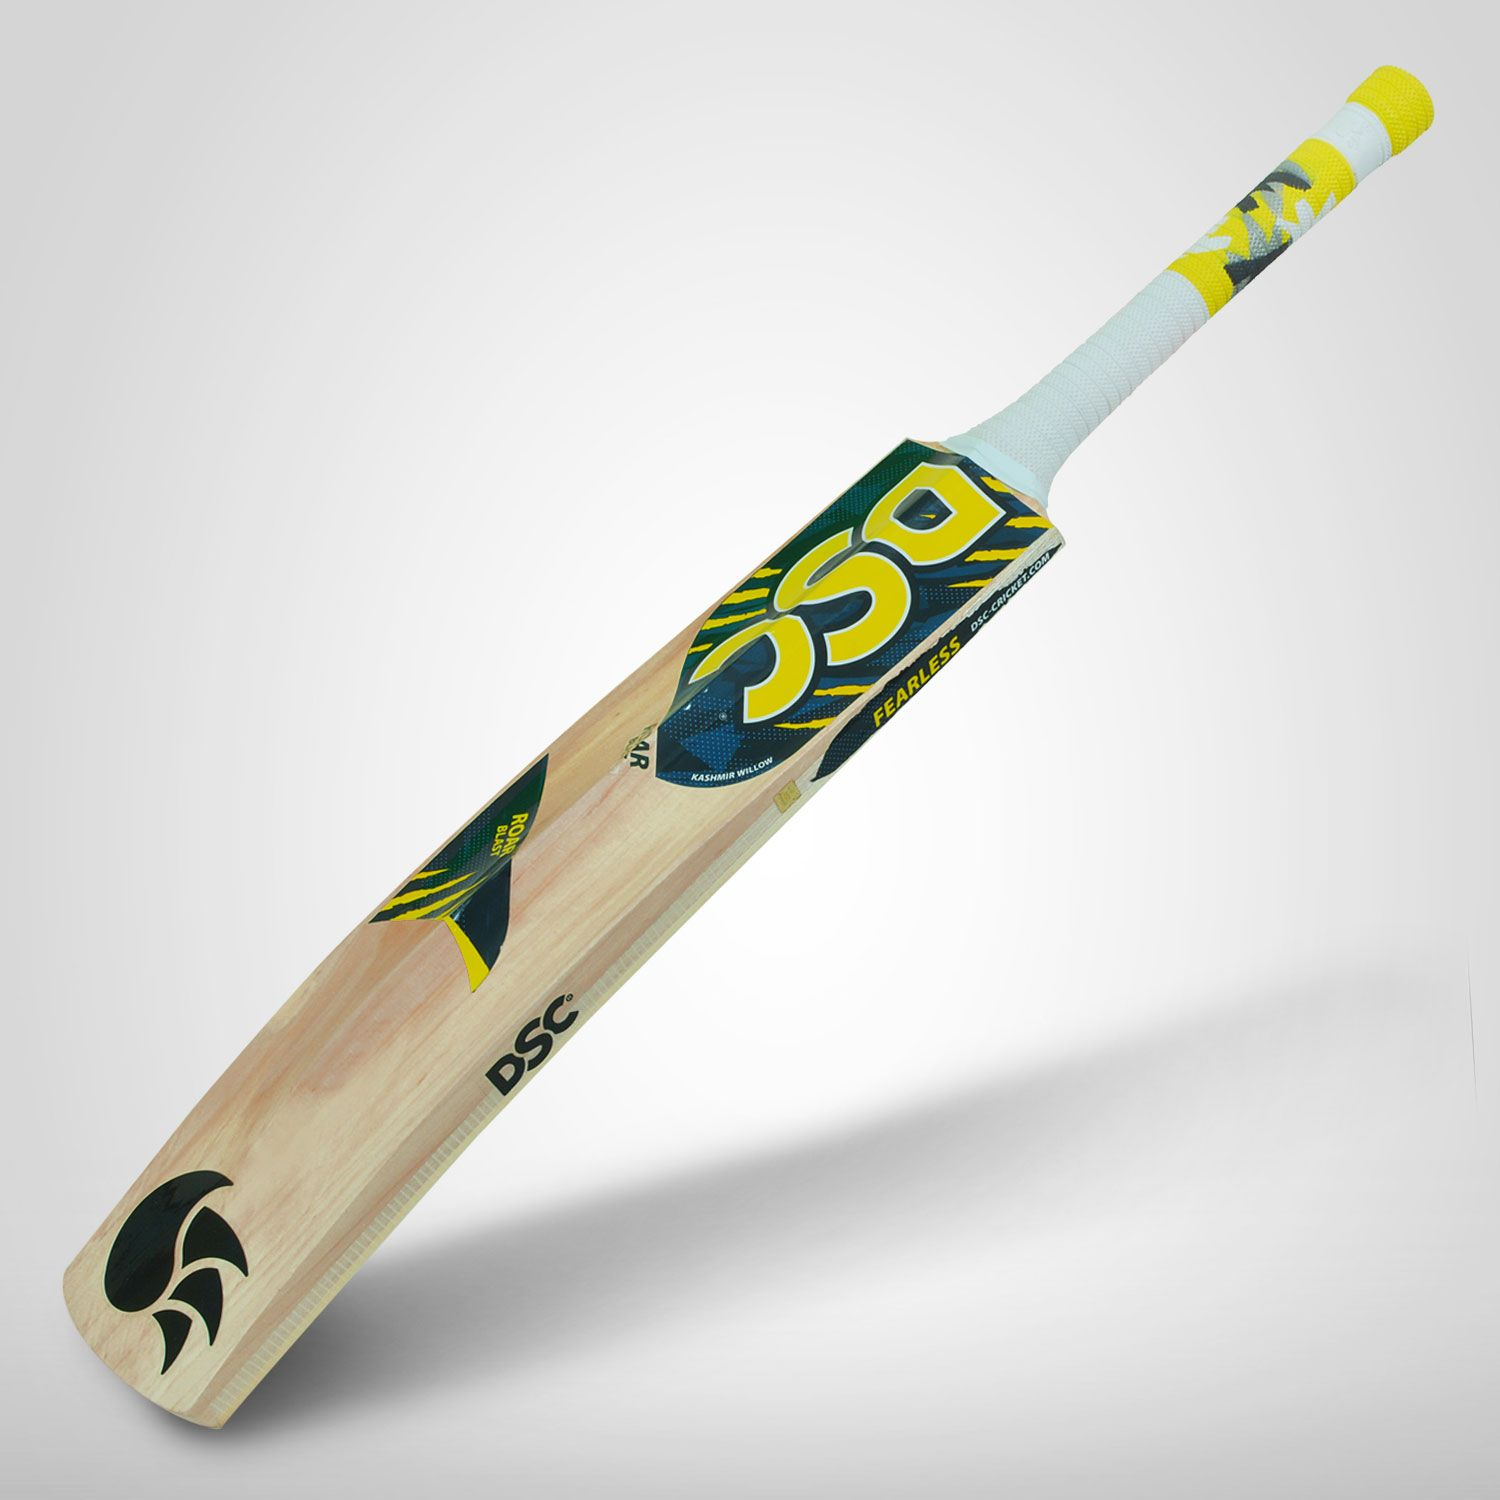 DSC Roar Blast Kashmir Willow Cricket Bat ( Size: -Harrow , Ball_ type : Leather Ball, Playing Style : All-Round )